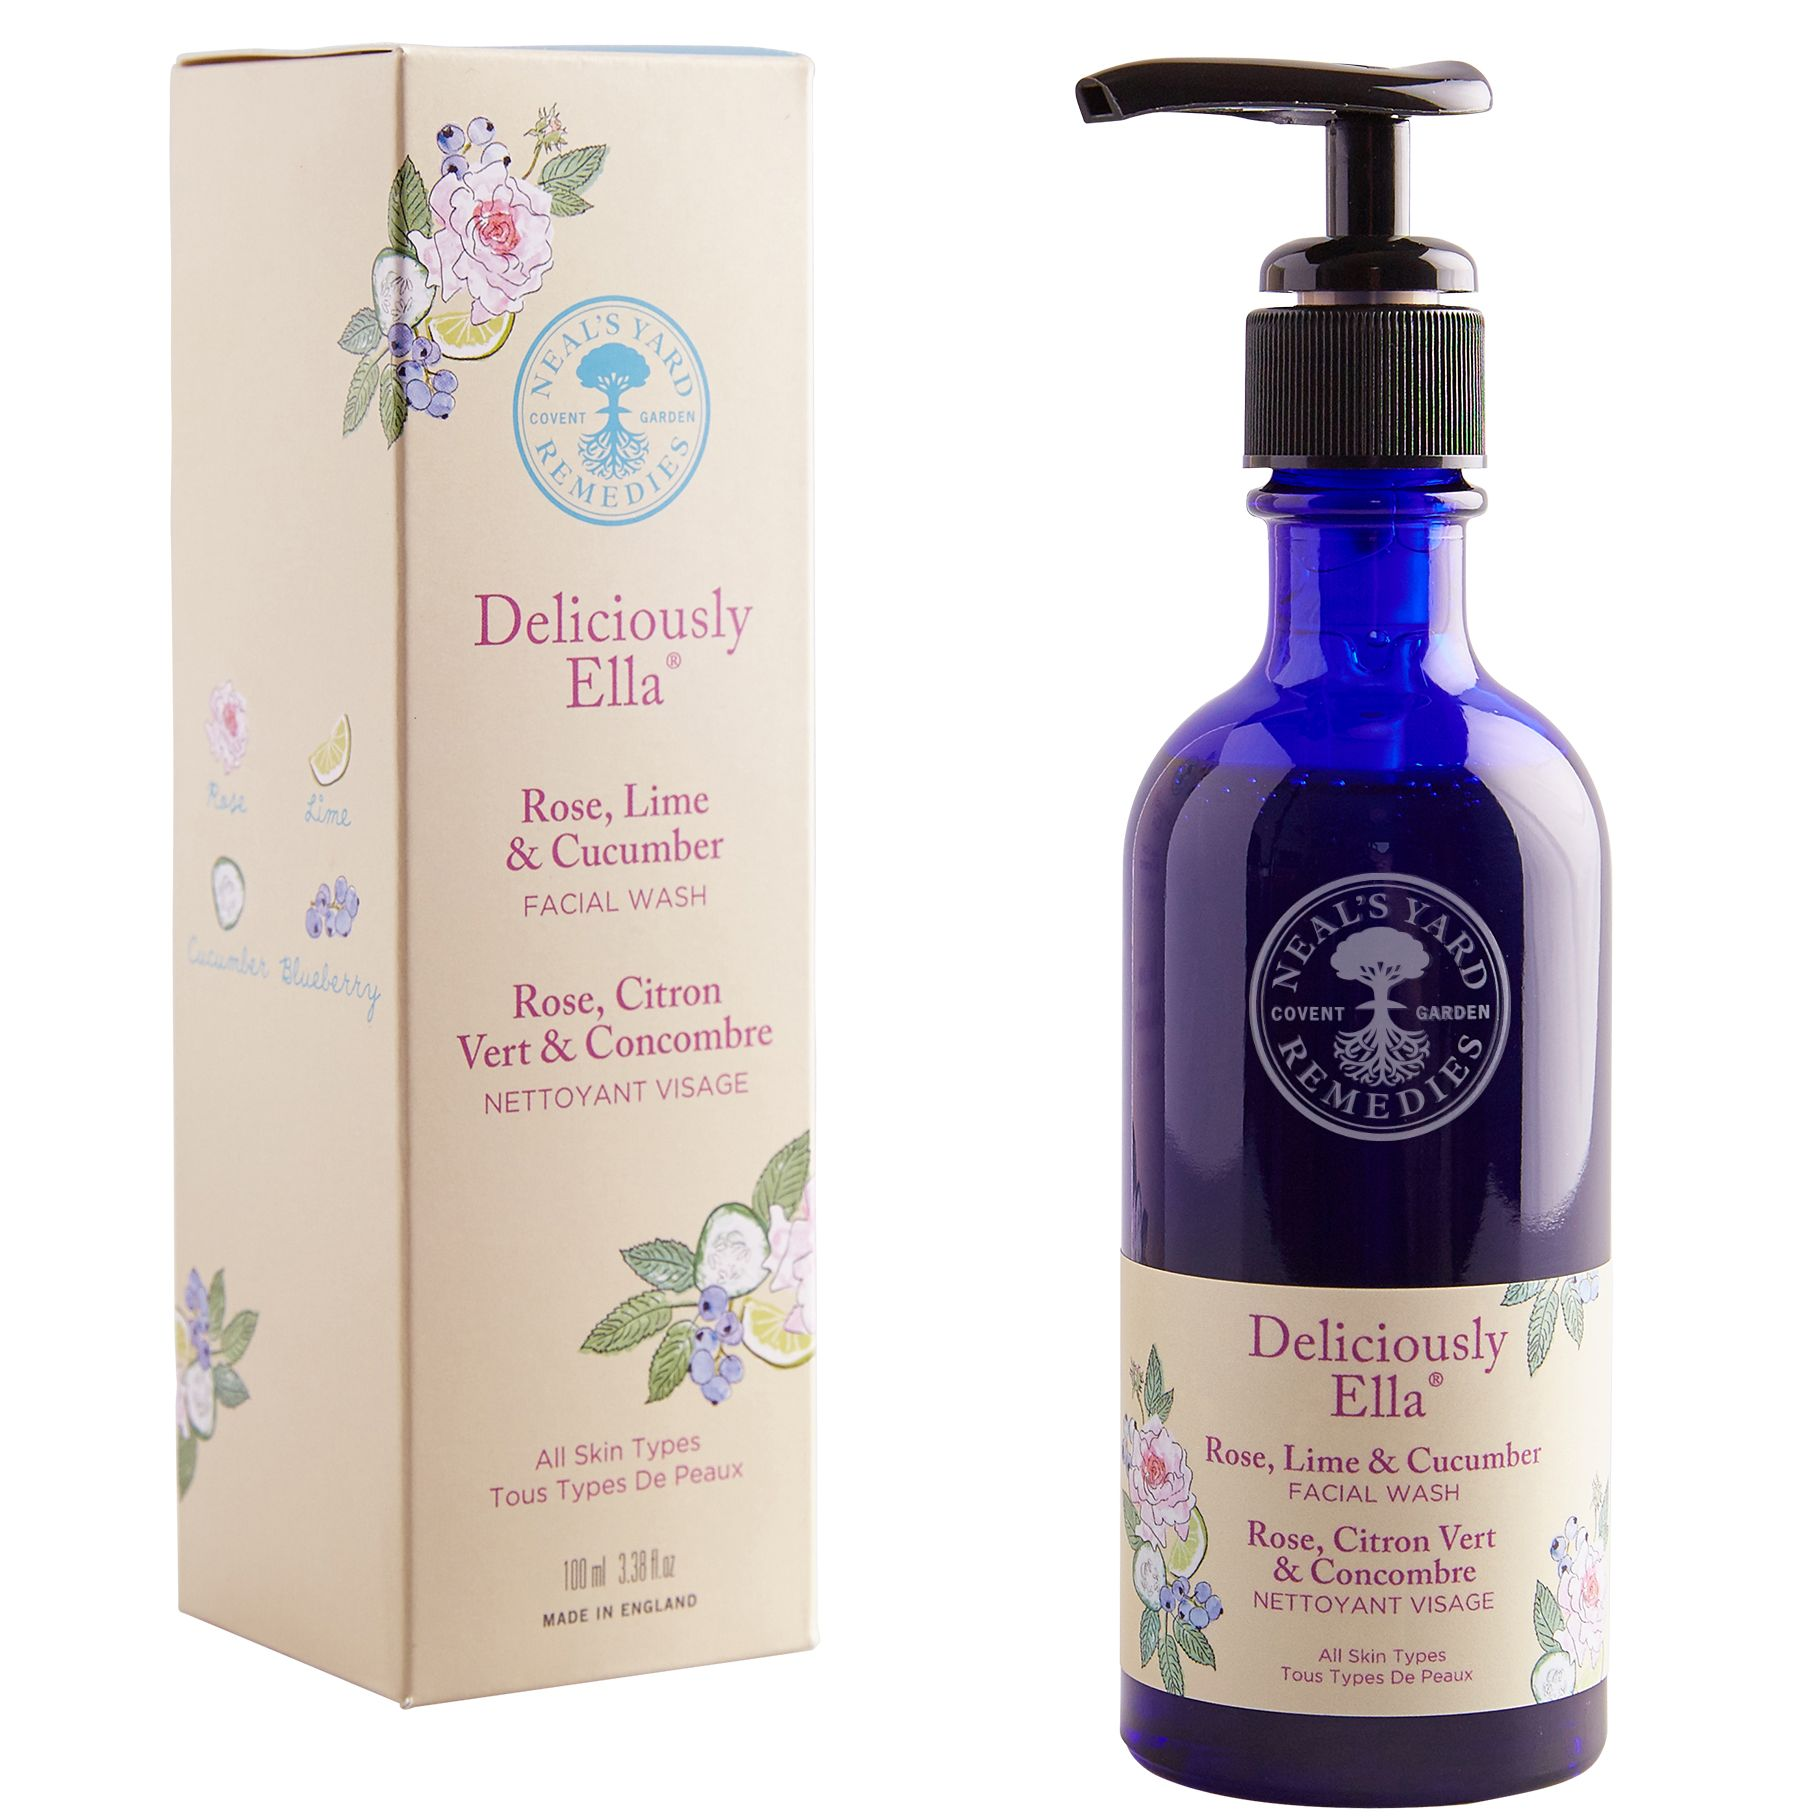 Neal's Yard Neal's Yard Deliciously Ella Rose, Lime and Cucumber Facial Wash, 100ml